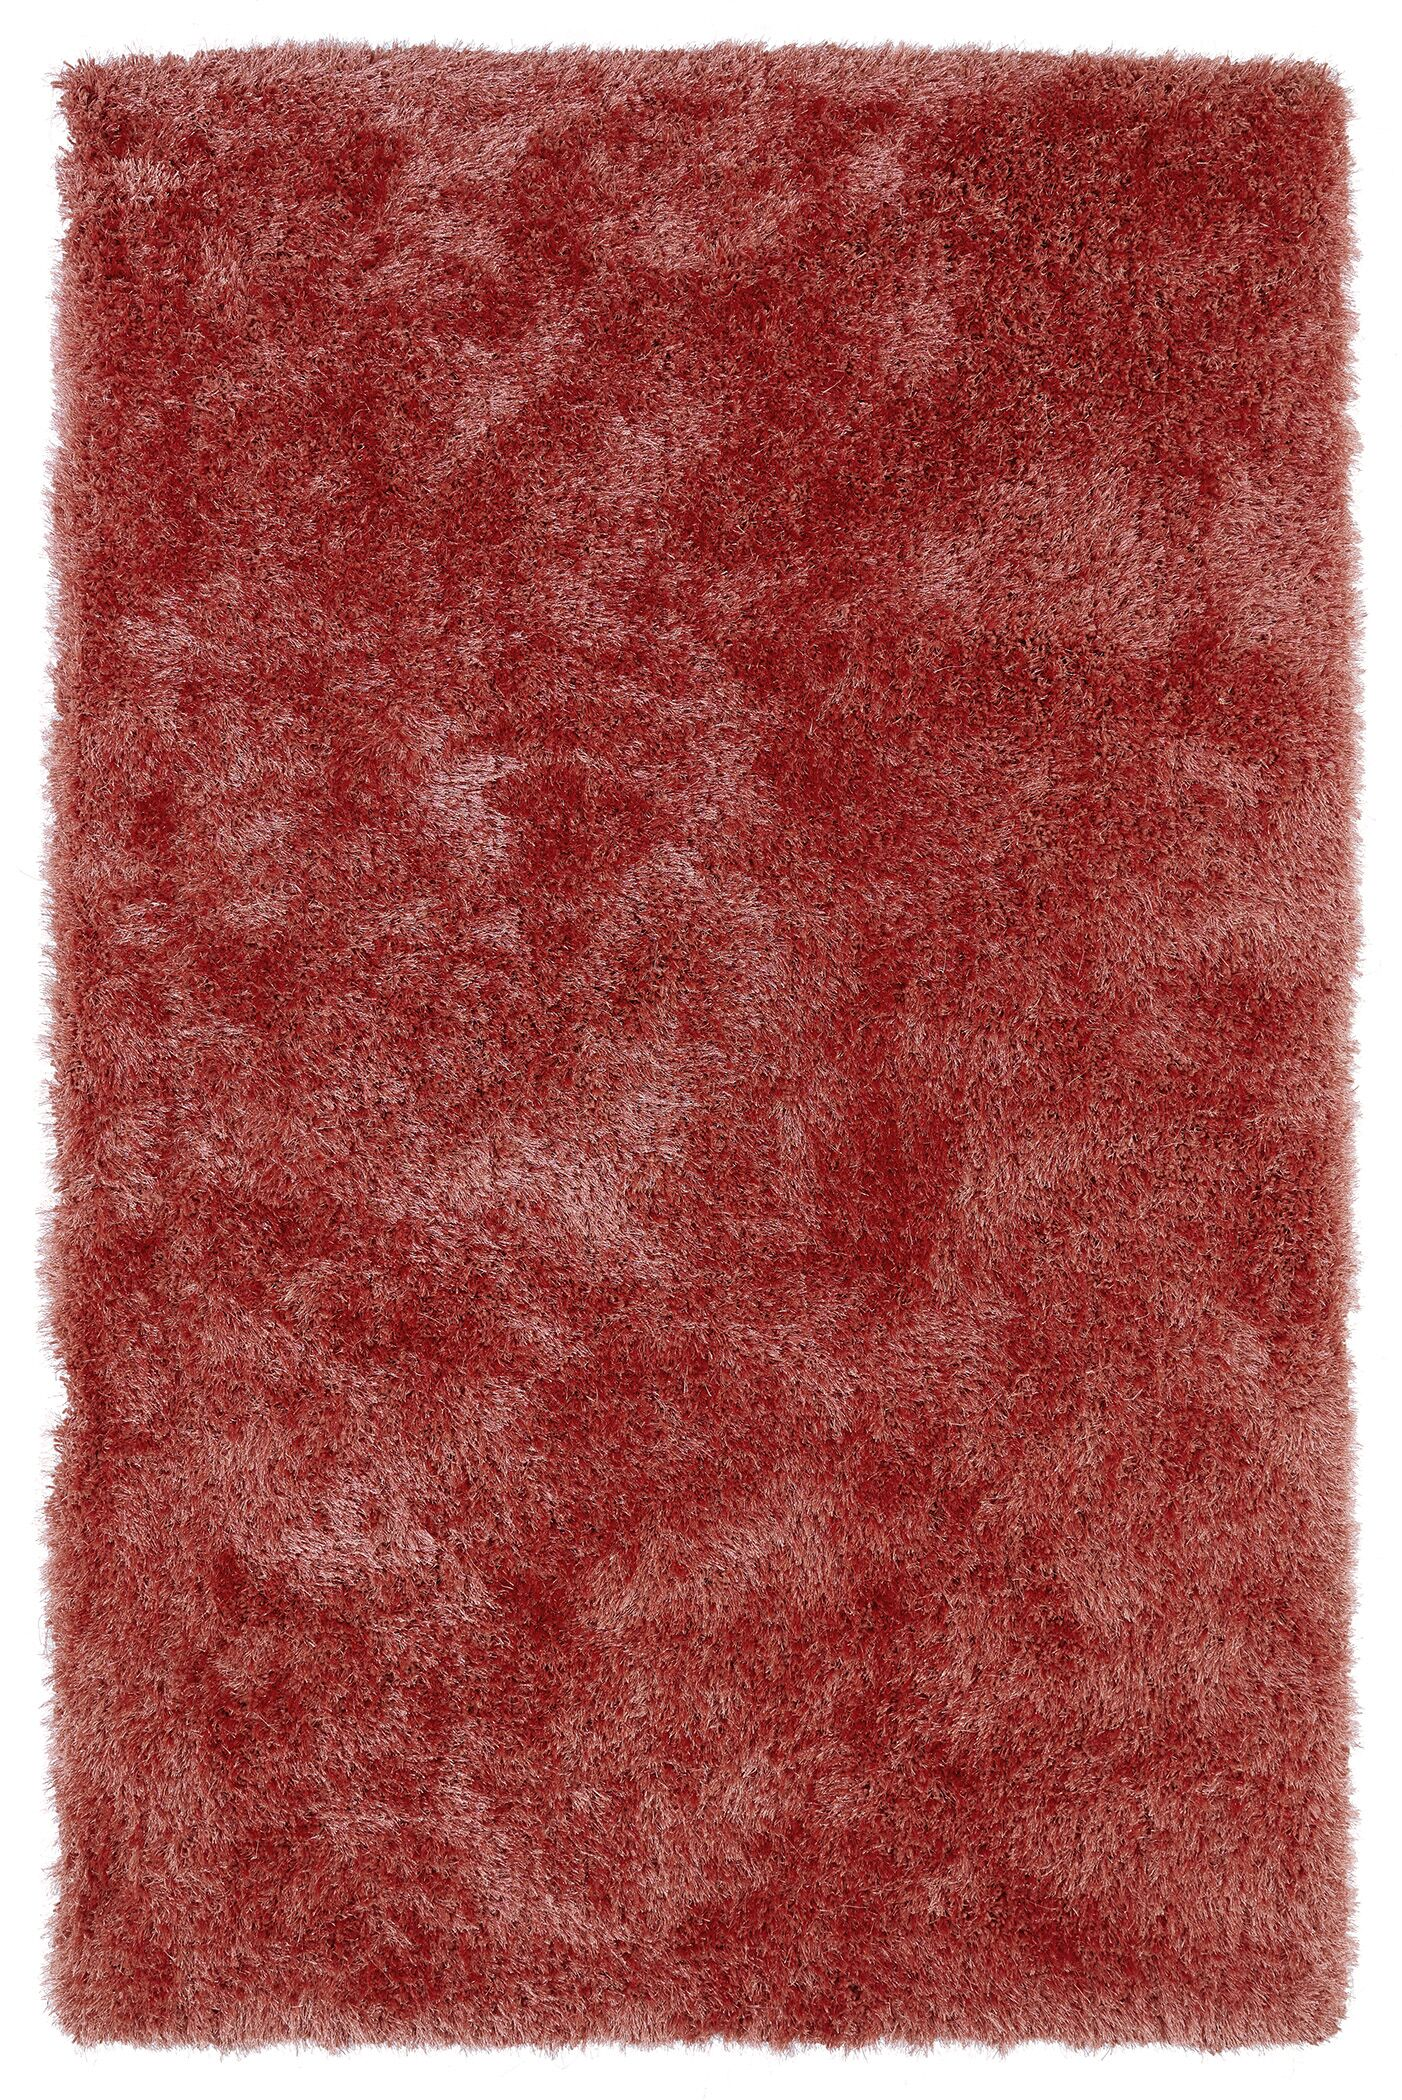 Caine Coral Area Rug Rug Size: Rectangle 3' x 5'